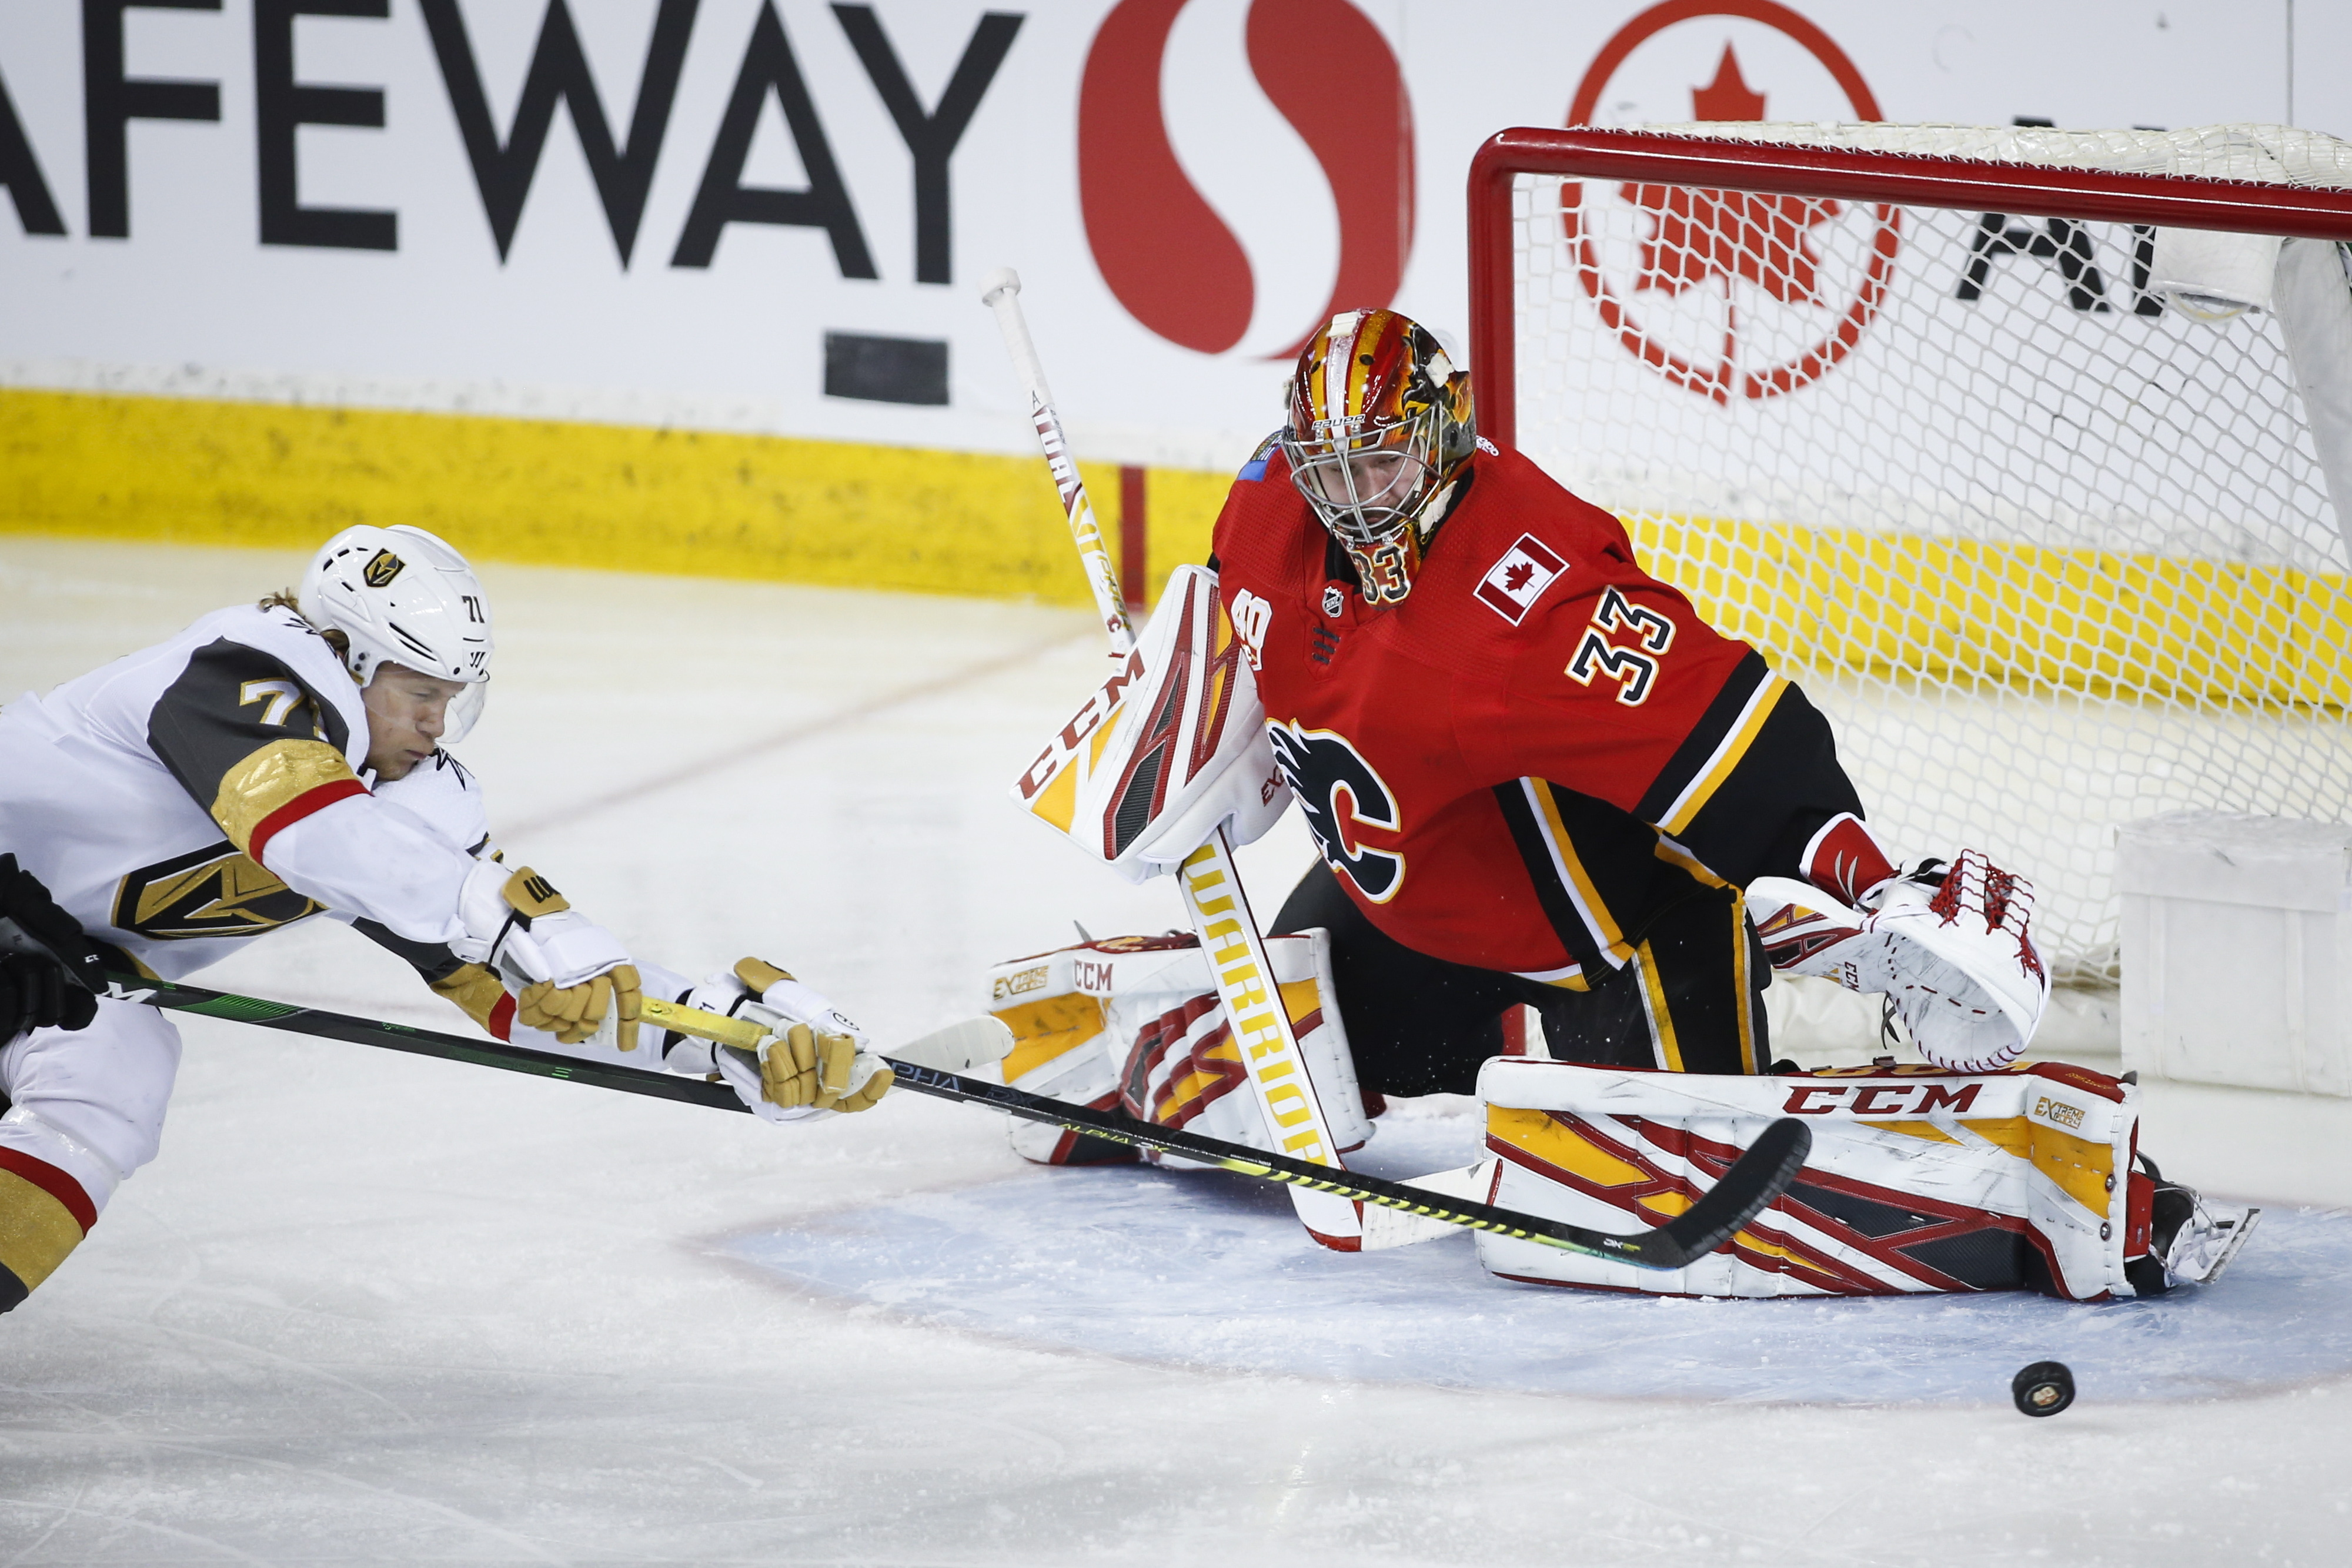 Theodore scores late, Golden Knights beat Flames 5-3